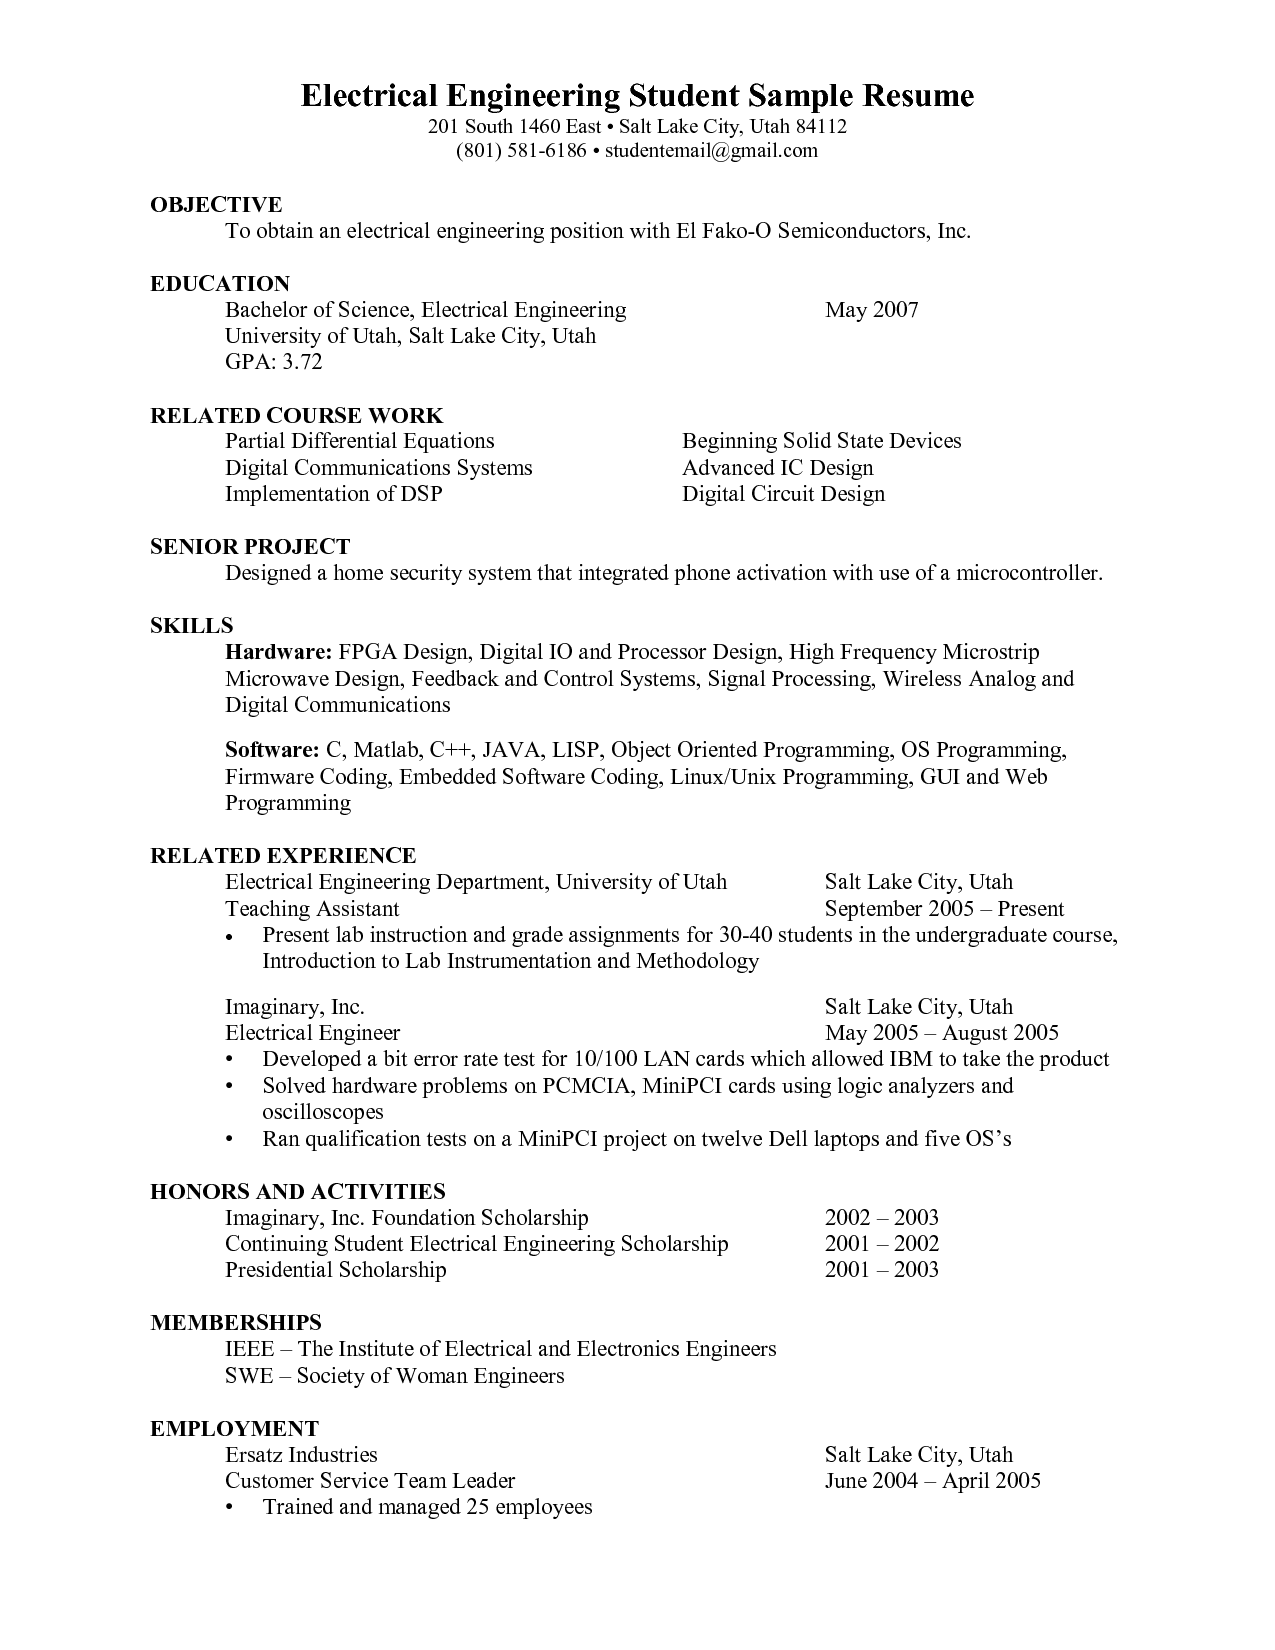 Find Resume Free Engineering Student Resume Google Search Resumes